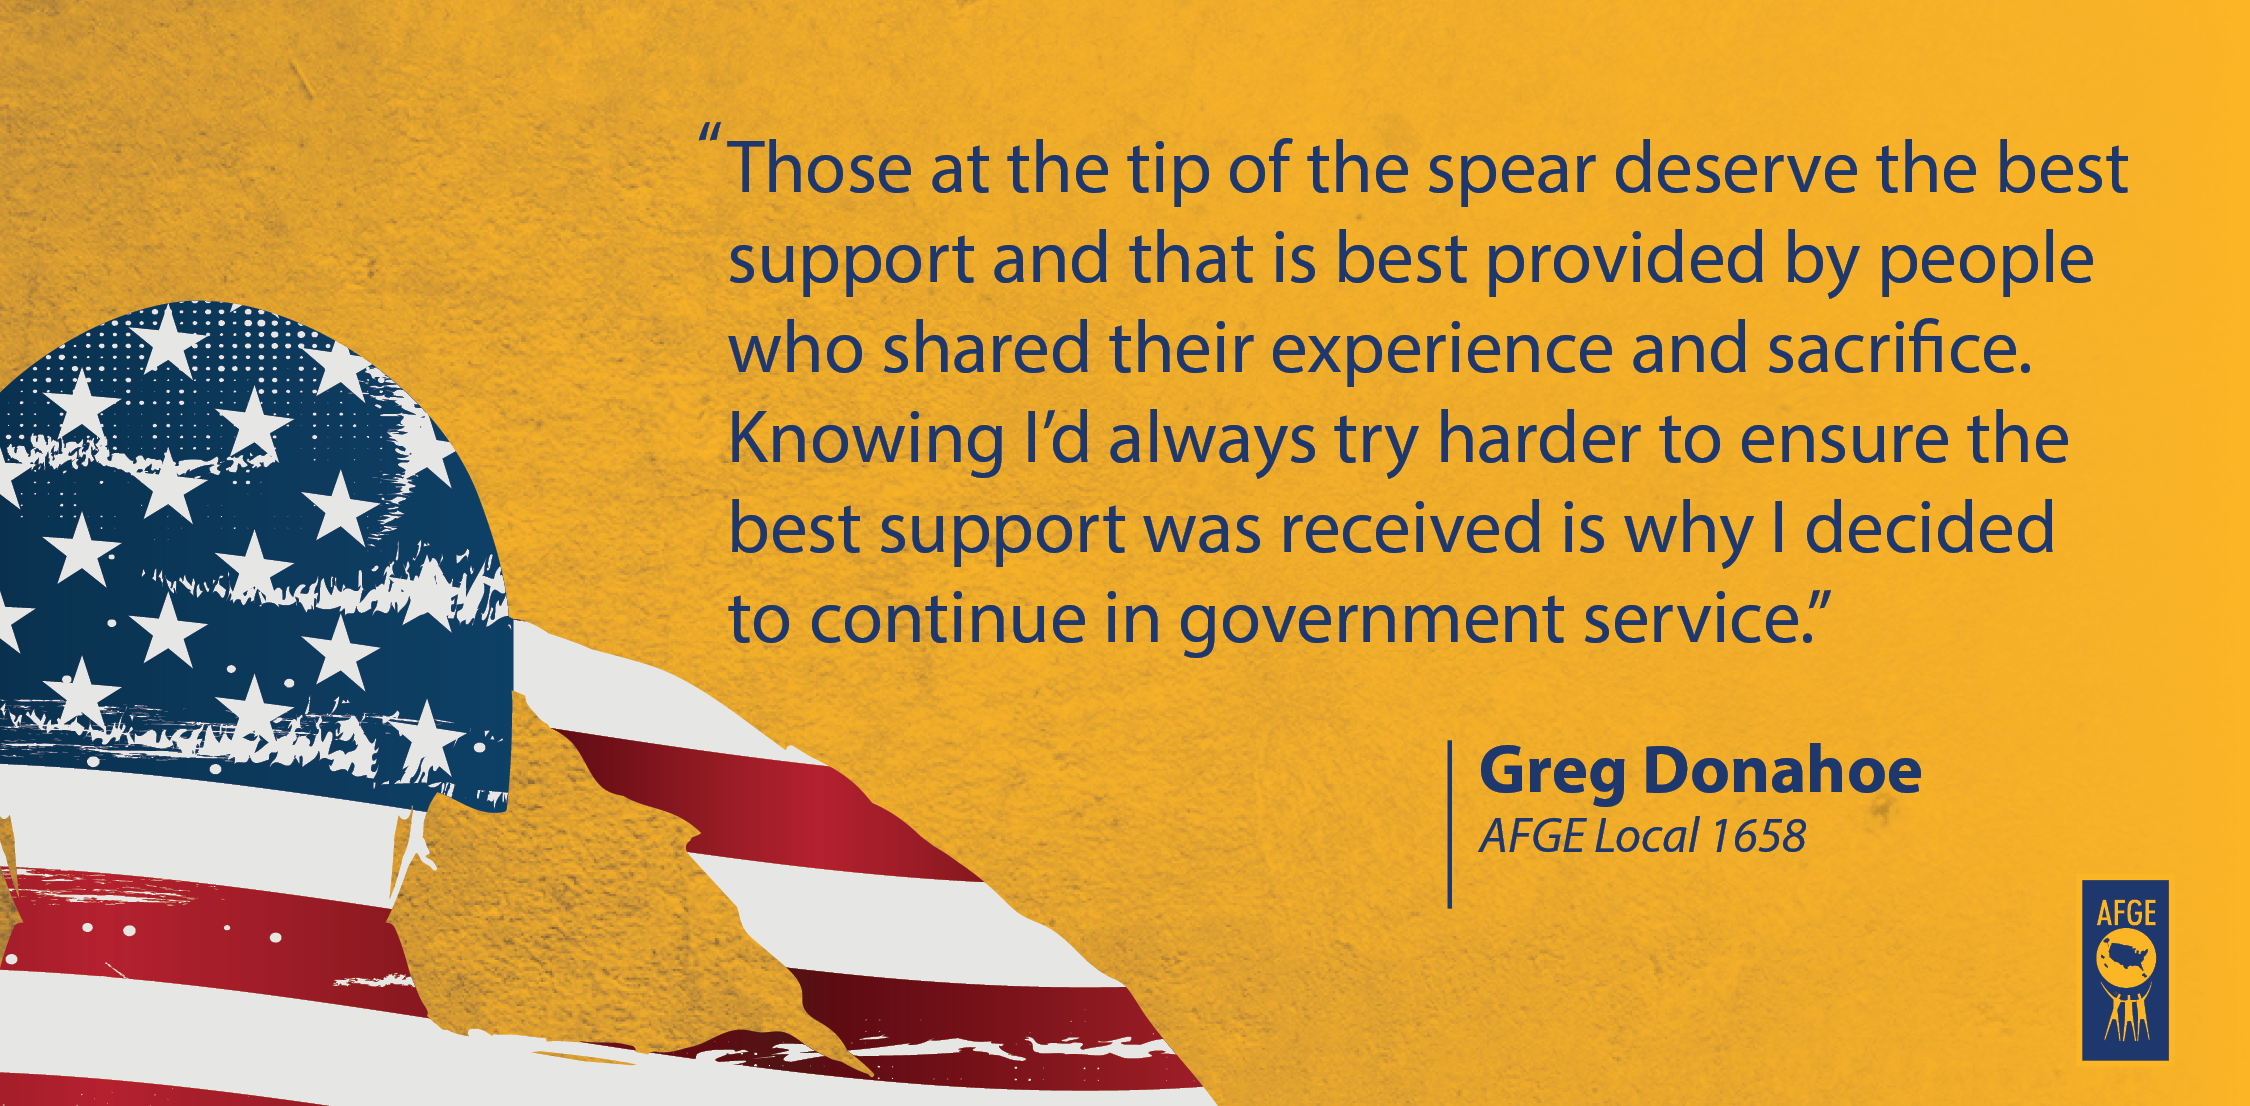 Quote from Greg Donahoe of AFGE Local 1658